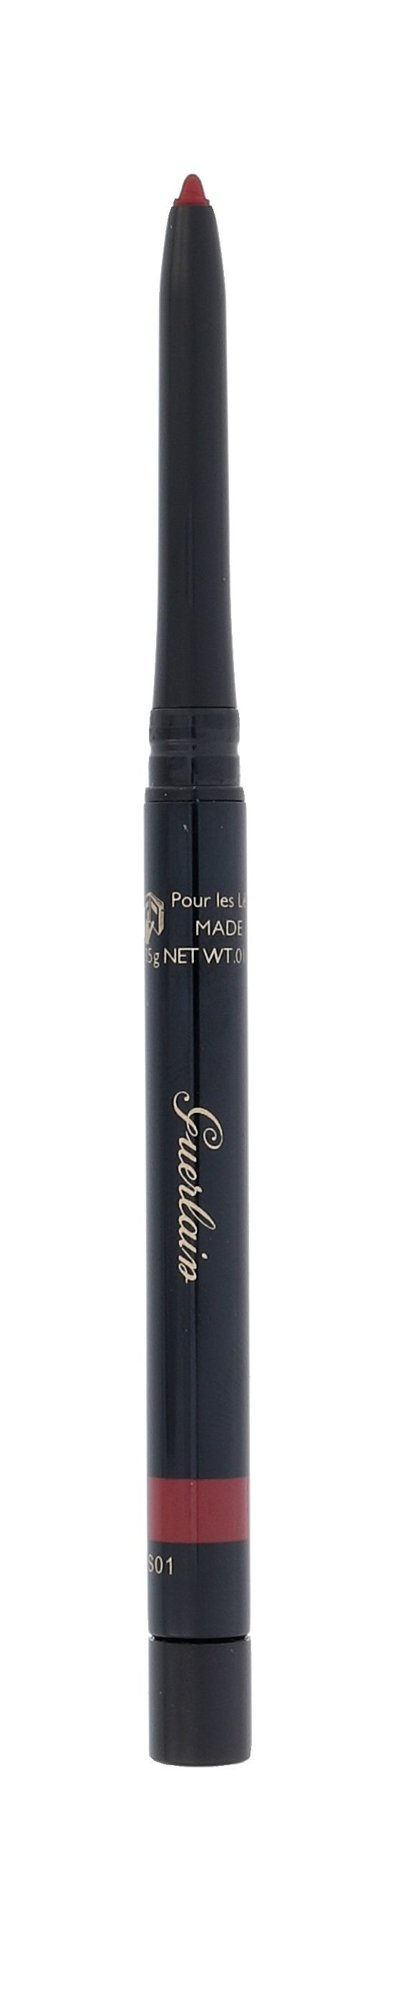 Pravedimai akims Guerlain The Lip Liner